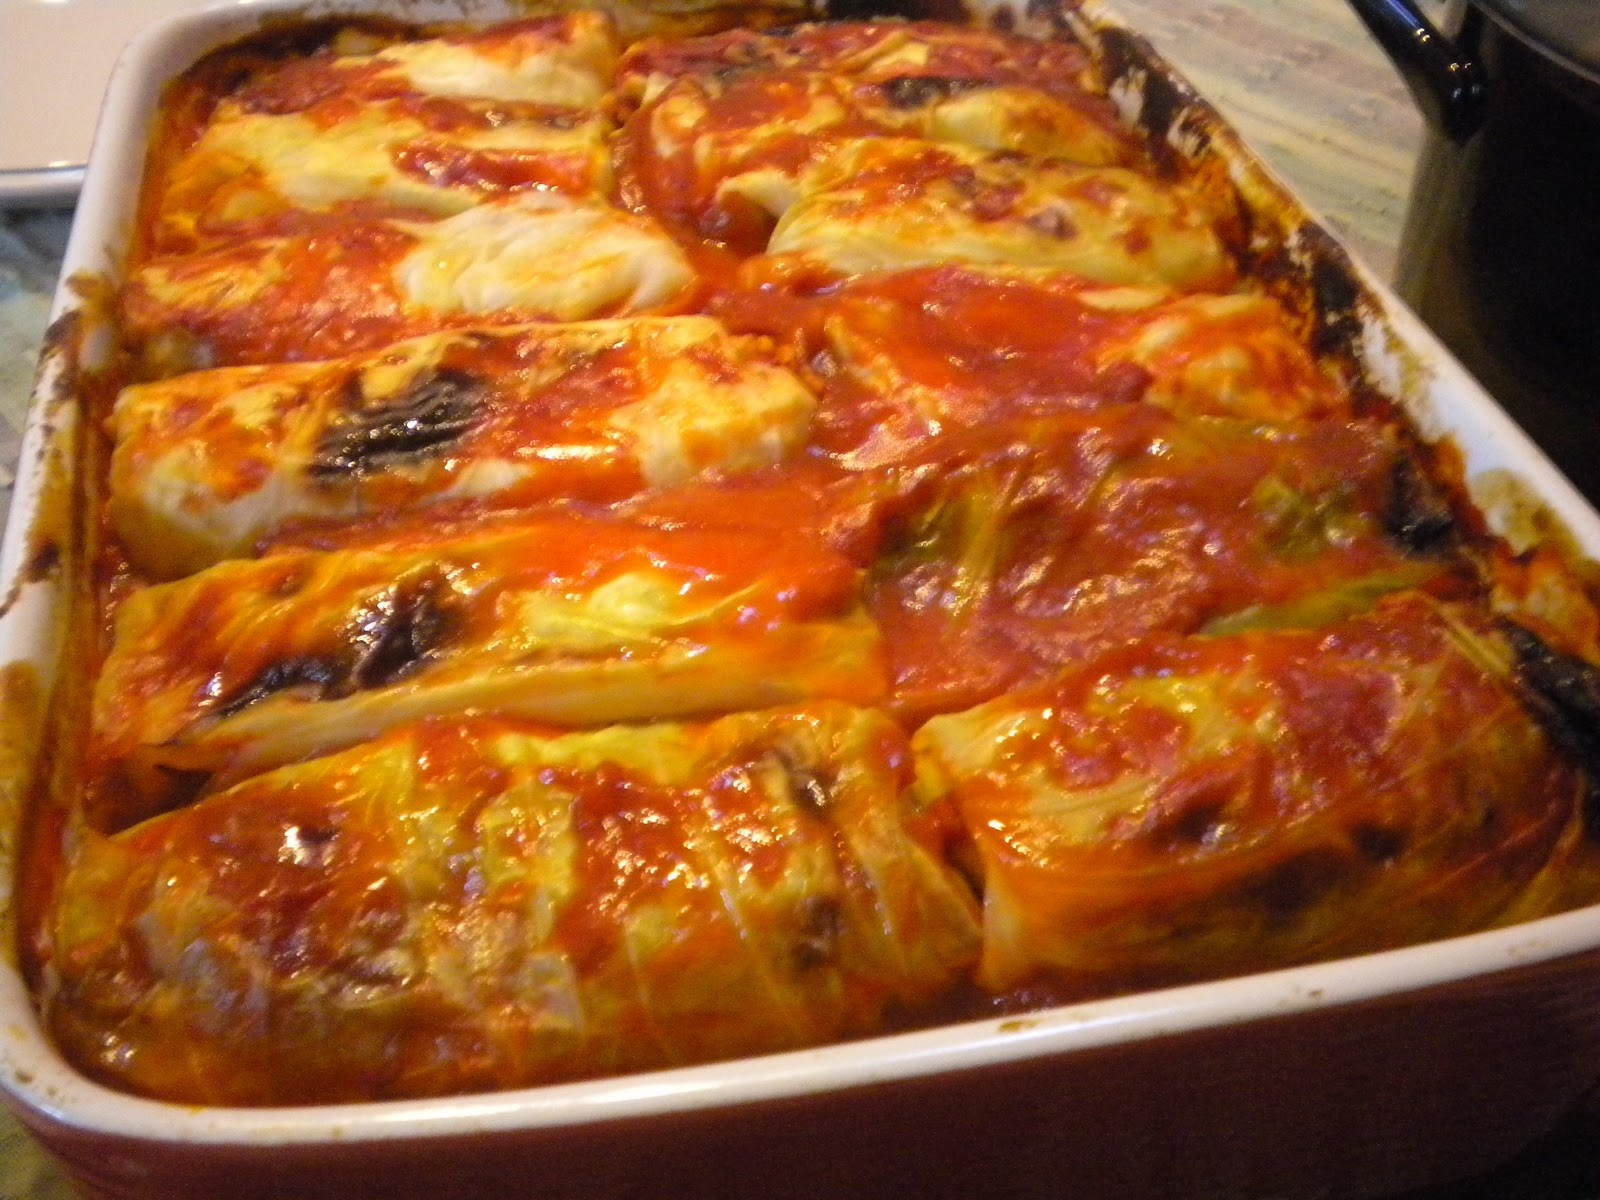 Gormandize: Posna Sarma (Croatian Rice-filled Cabbage Rolls)